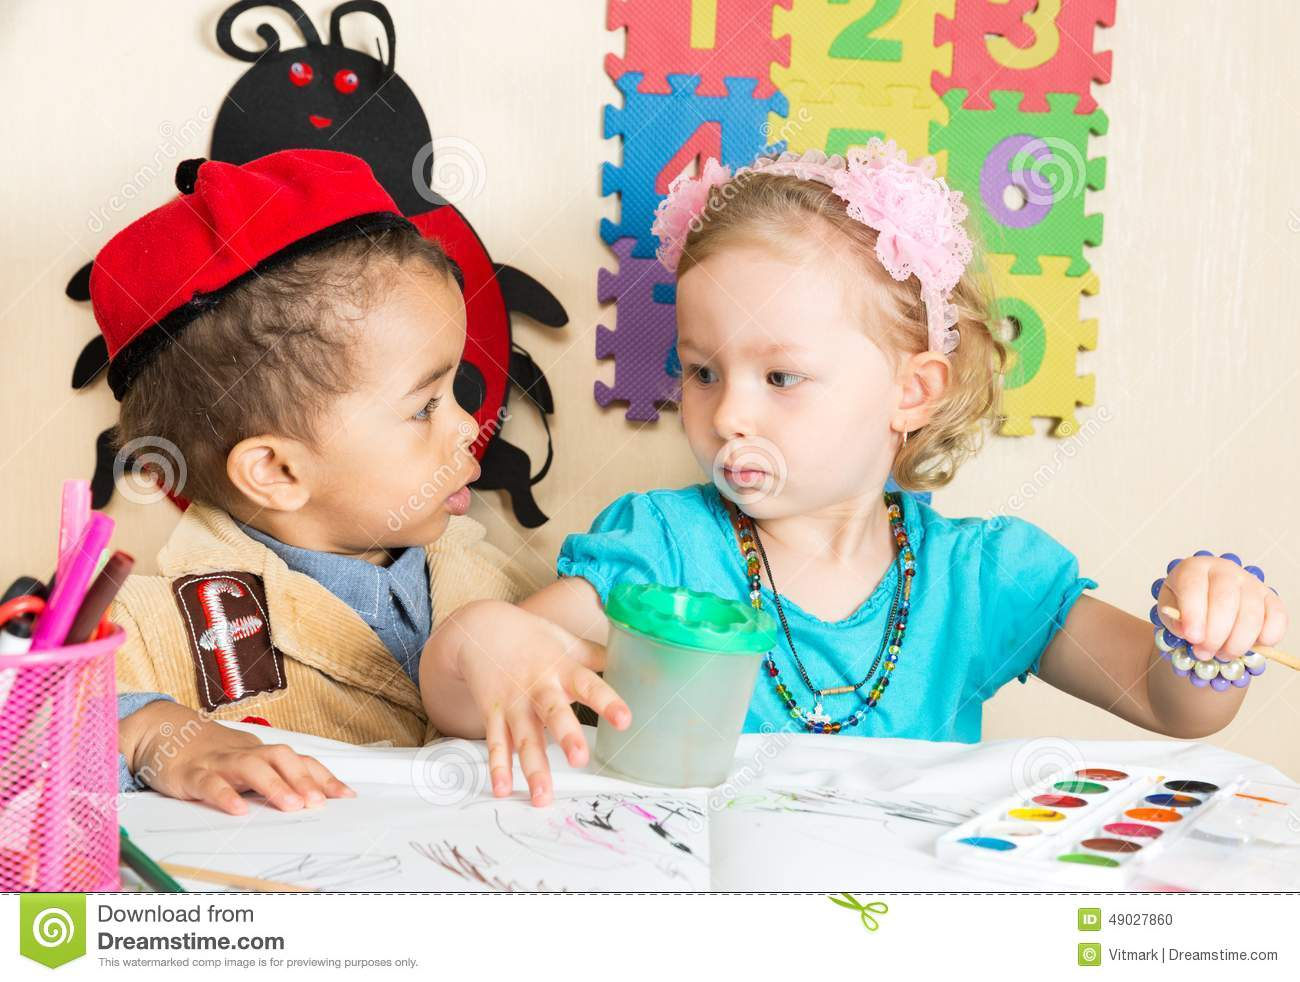 African American Black Boy And Girl Drawing With Colorful